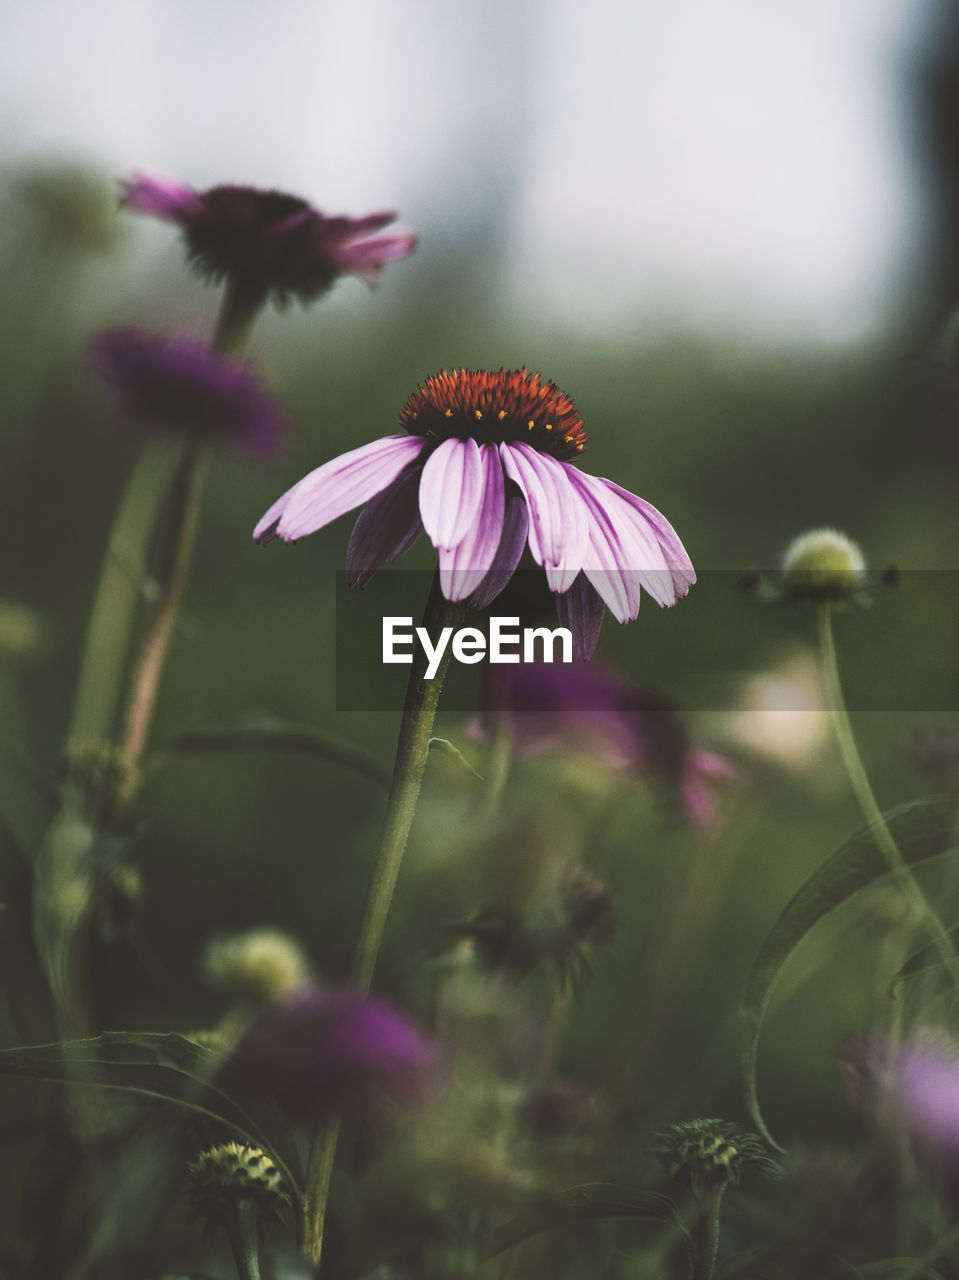 flowering plant, flower, freshness, vulnerability, fragility, plant, growth, petal, beauty in nature, close-up, inflorescence, flower head, selective focus, nature, no people, pink color, day, plant stem, field, coneflower, outdoors, pollen, purple, sepal